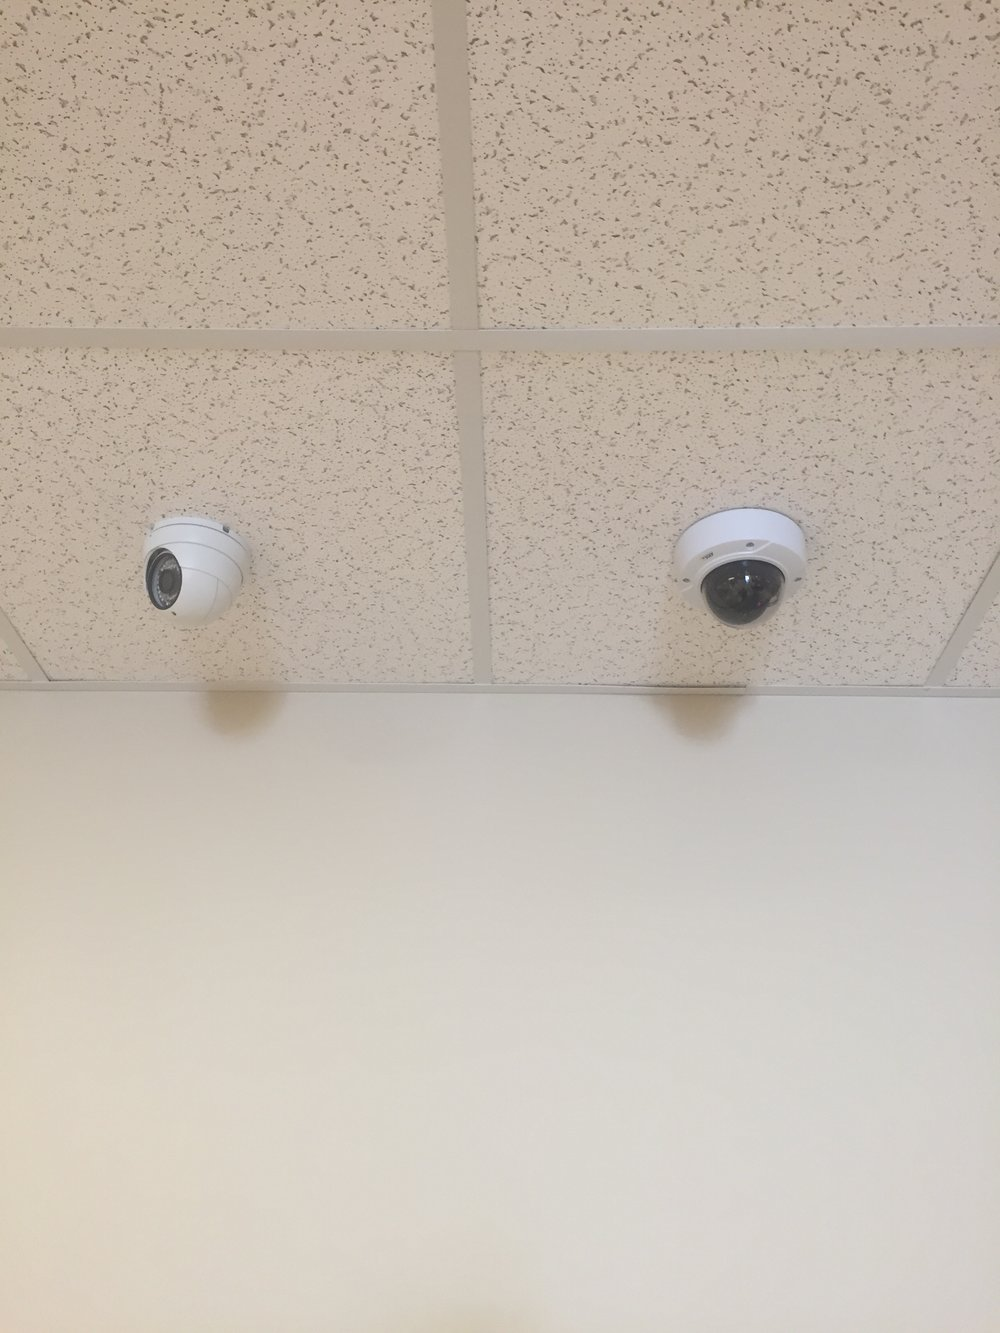 GrandStream (Left) and Axis (Right) indoor Cameras